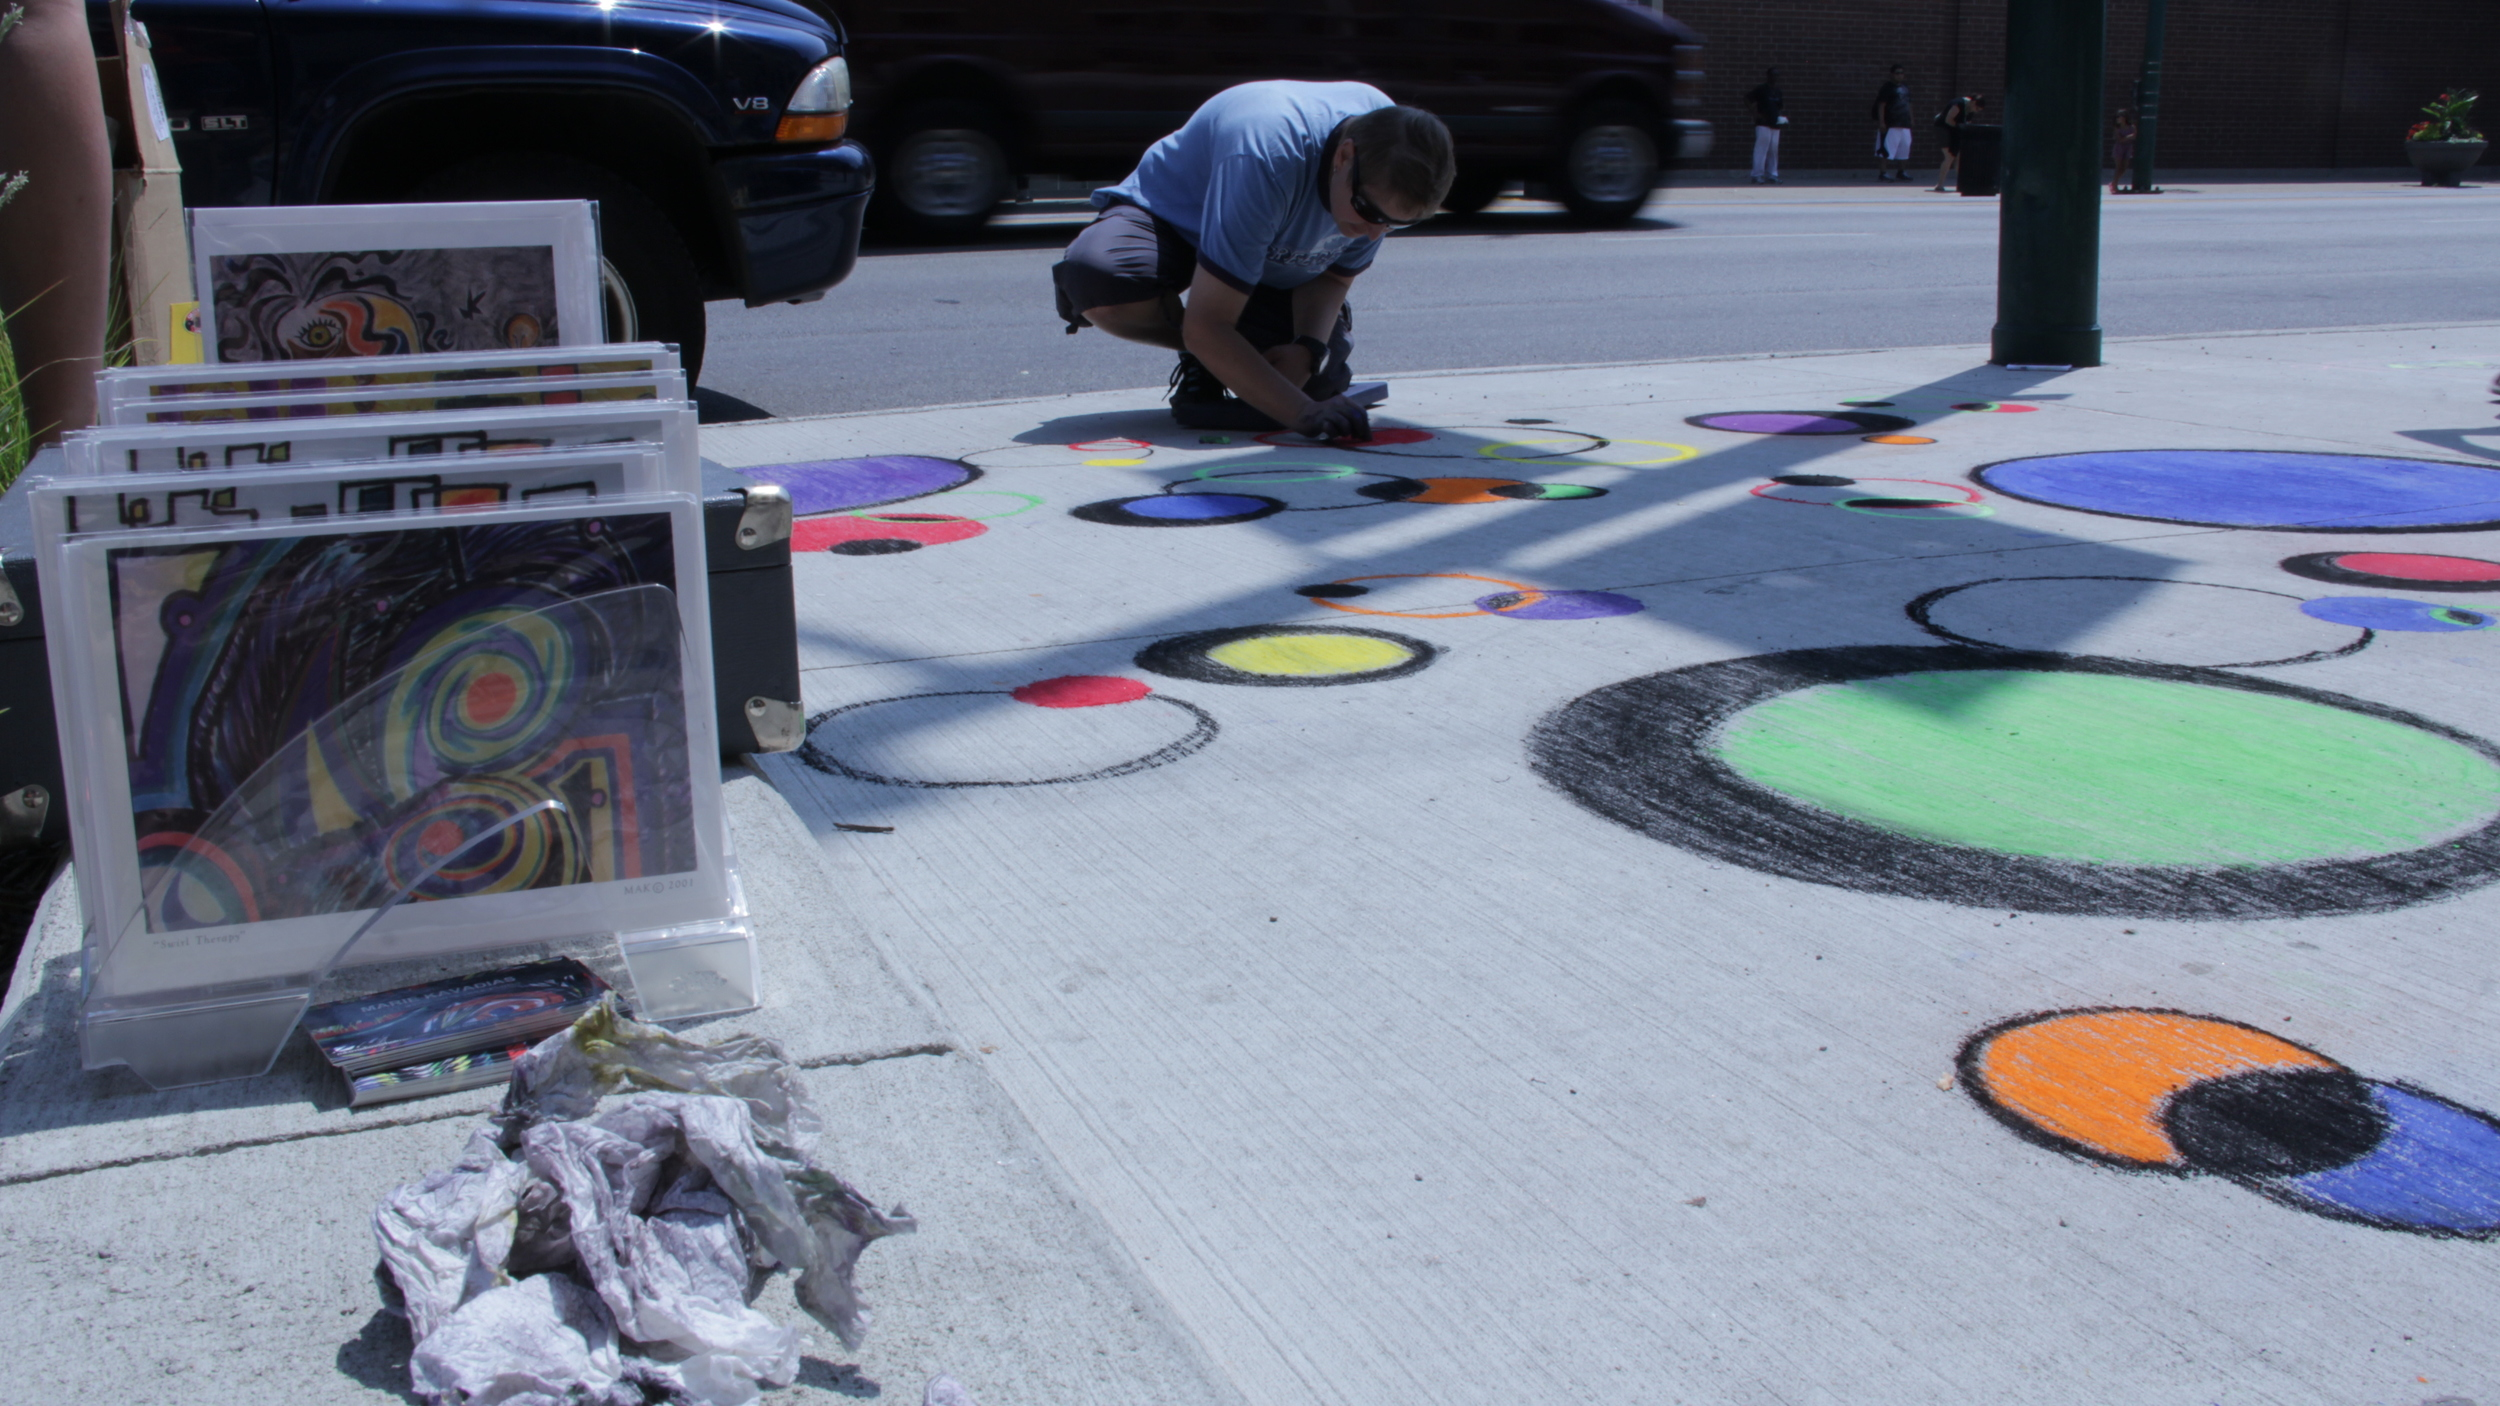 Artist participating in Great Chicago Chalk Art Festival